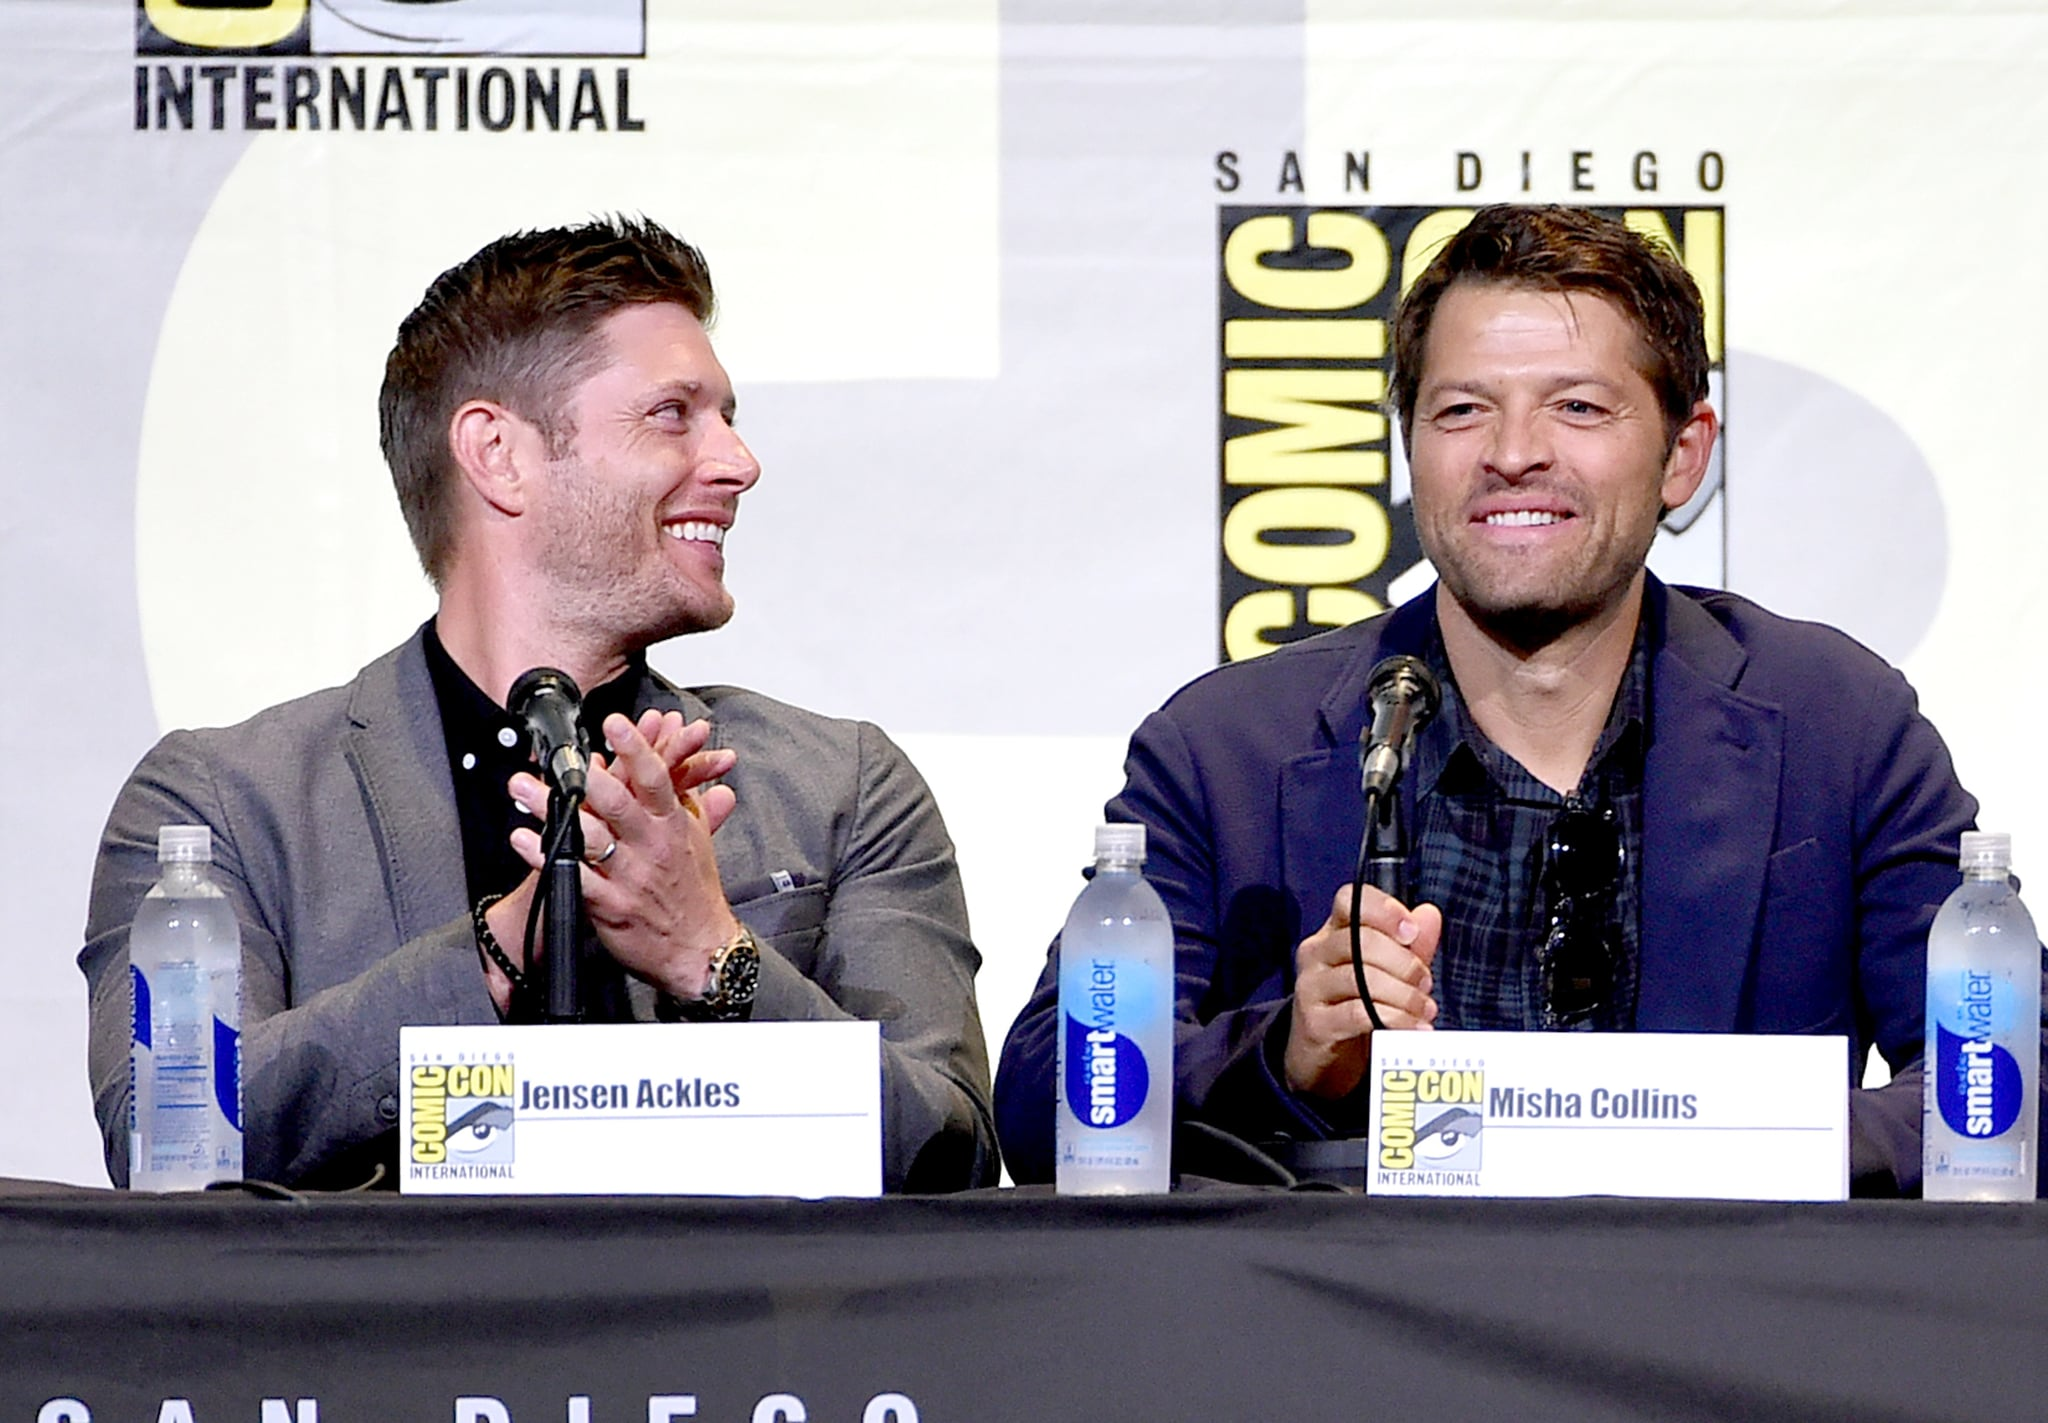 Jared padalecki quotes - While There Were Scores Of Noteworthy Parts Of The Event Like Jensen Ackles S Tidbit About His Daughter Jared Padalecki S Quote